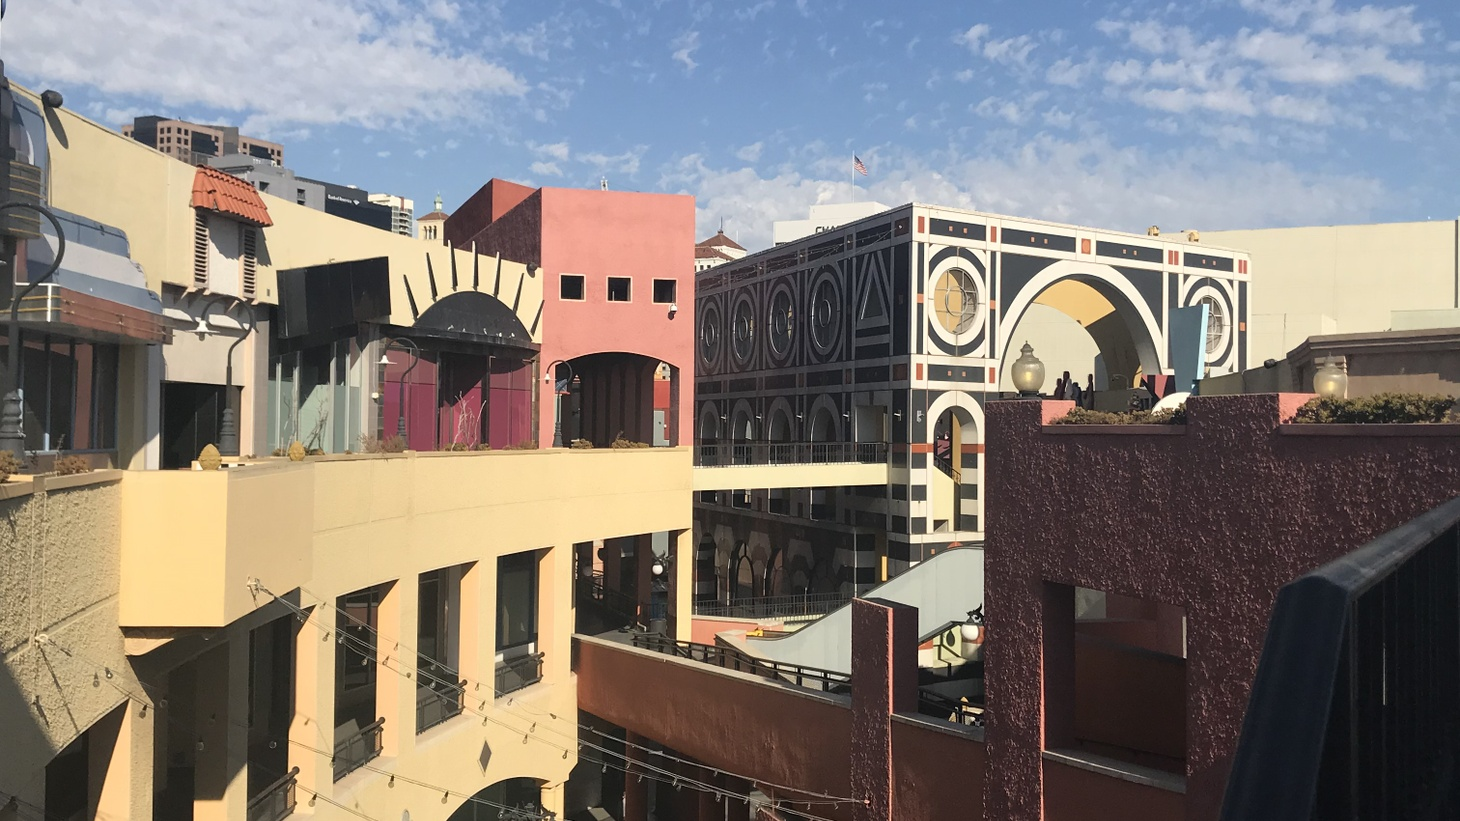 Most of Jon Jerde's design flourishes are still visible, even as Horton Plaza itself is mostly vacant.